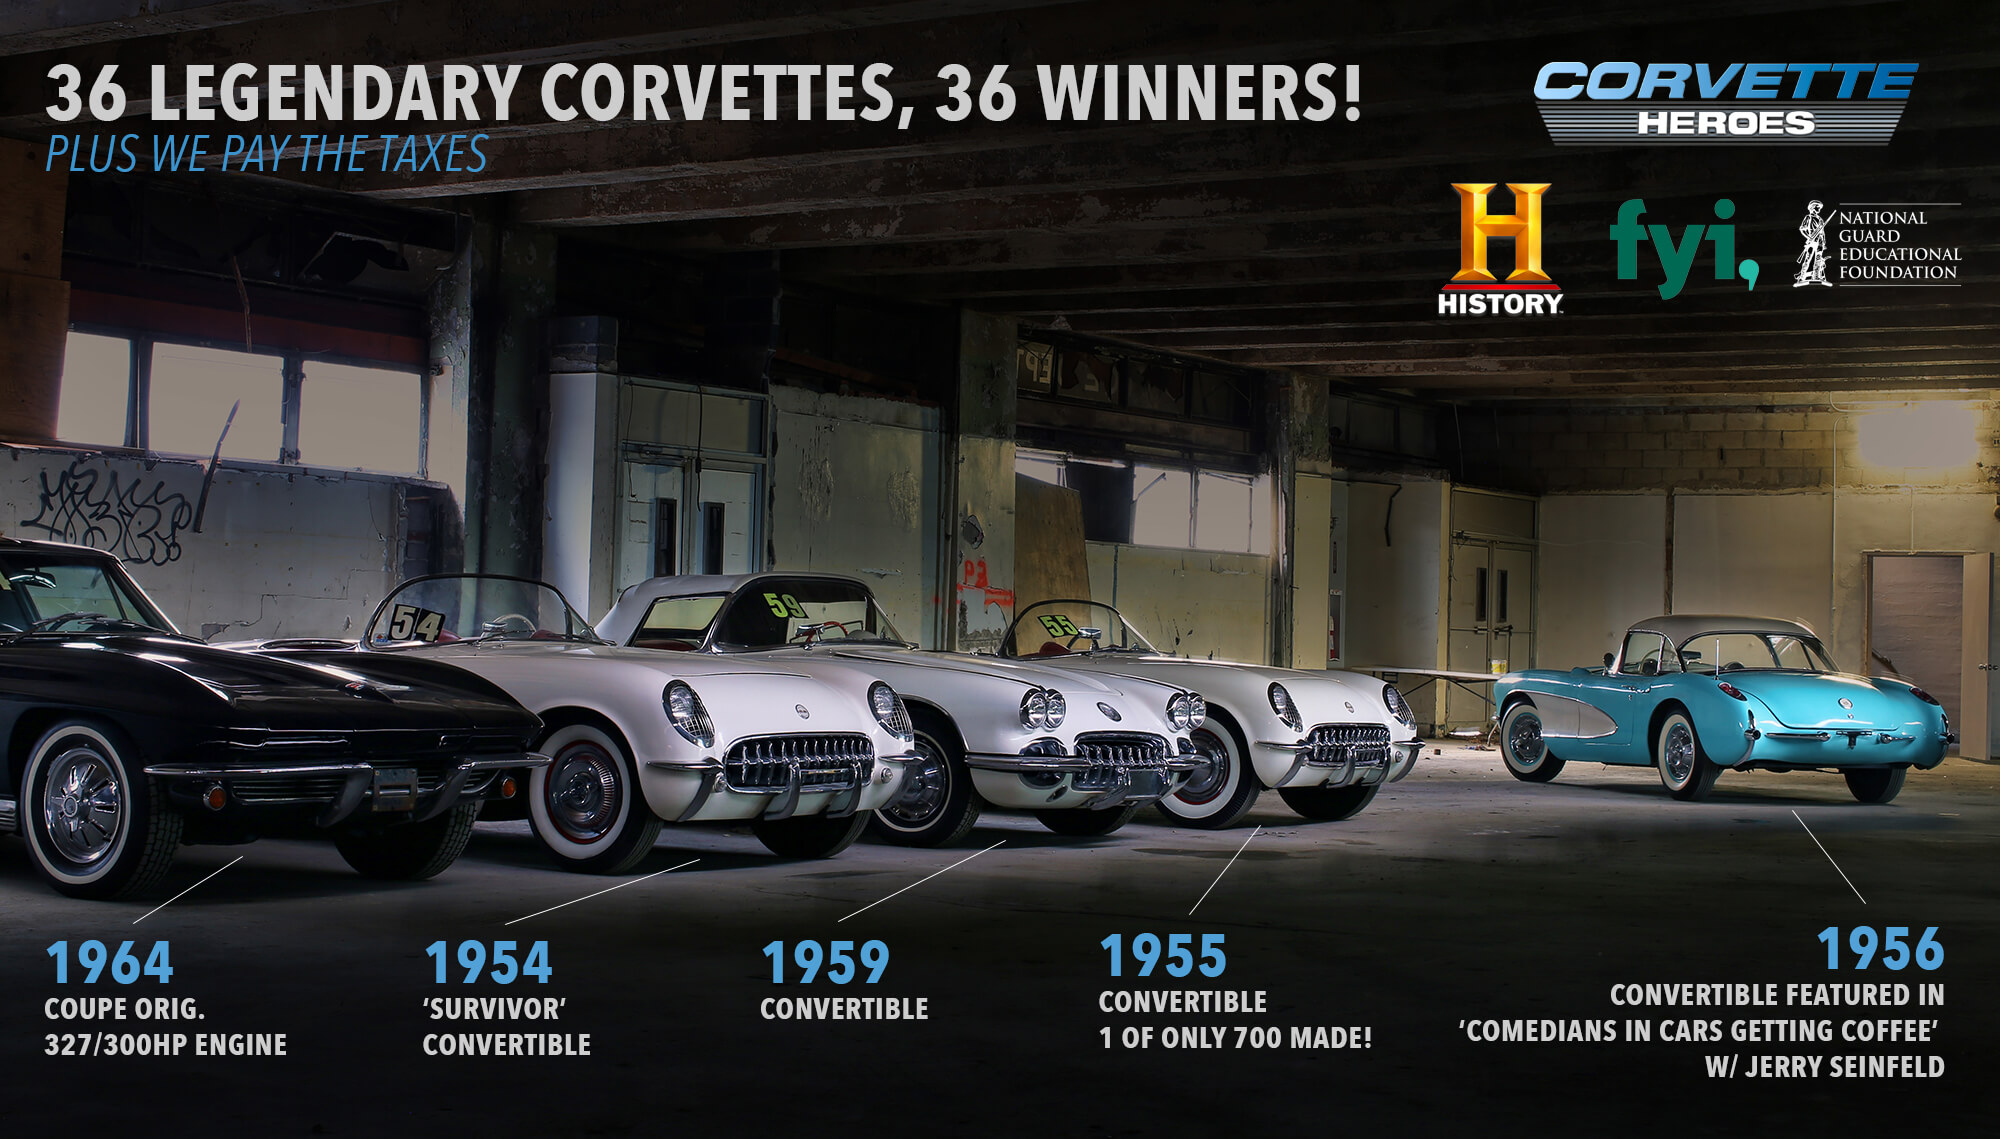 The History Channel will host a special about the Peter Max Corvette Collection later this month.